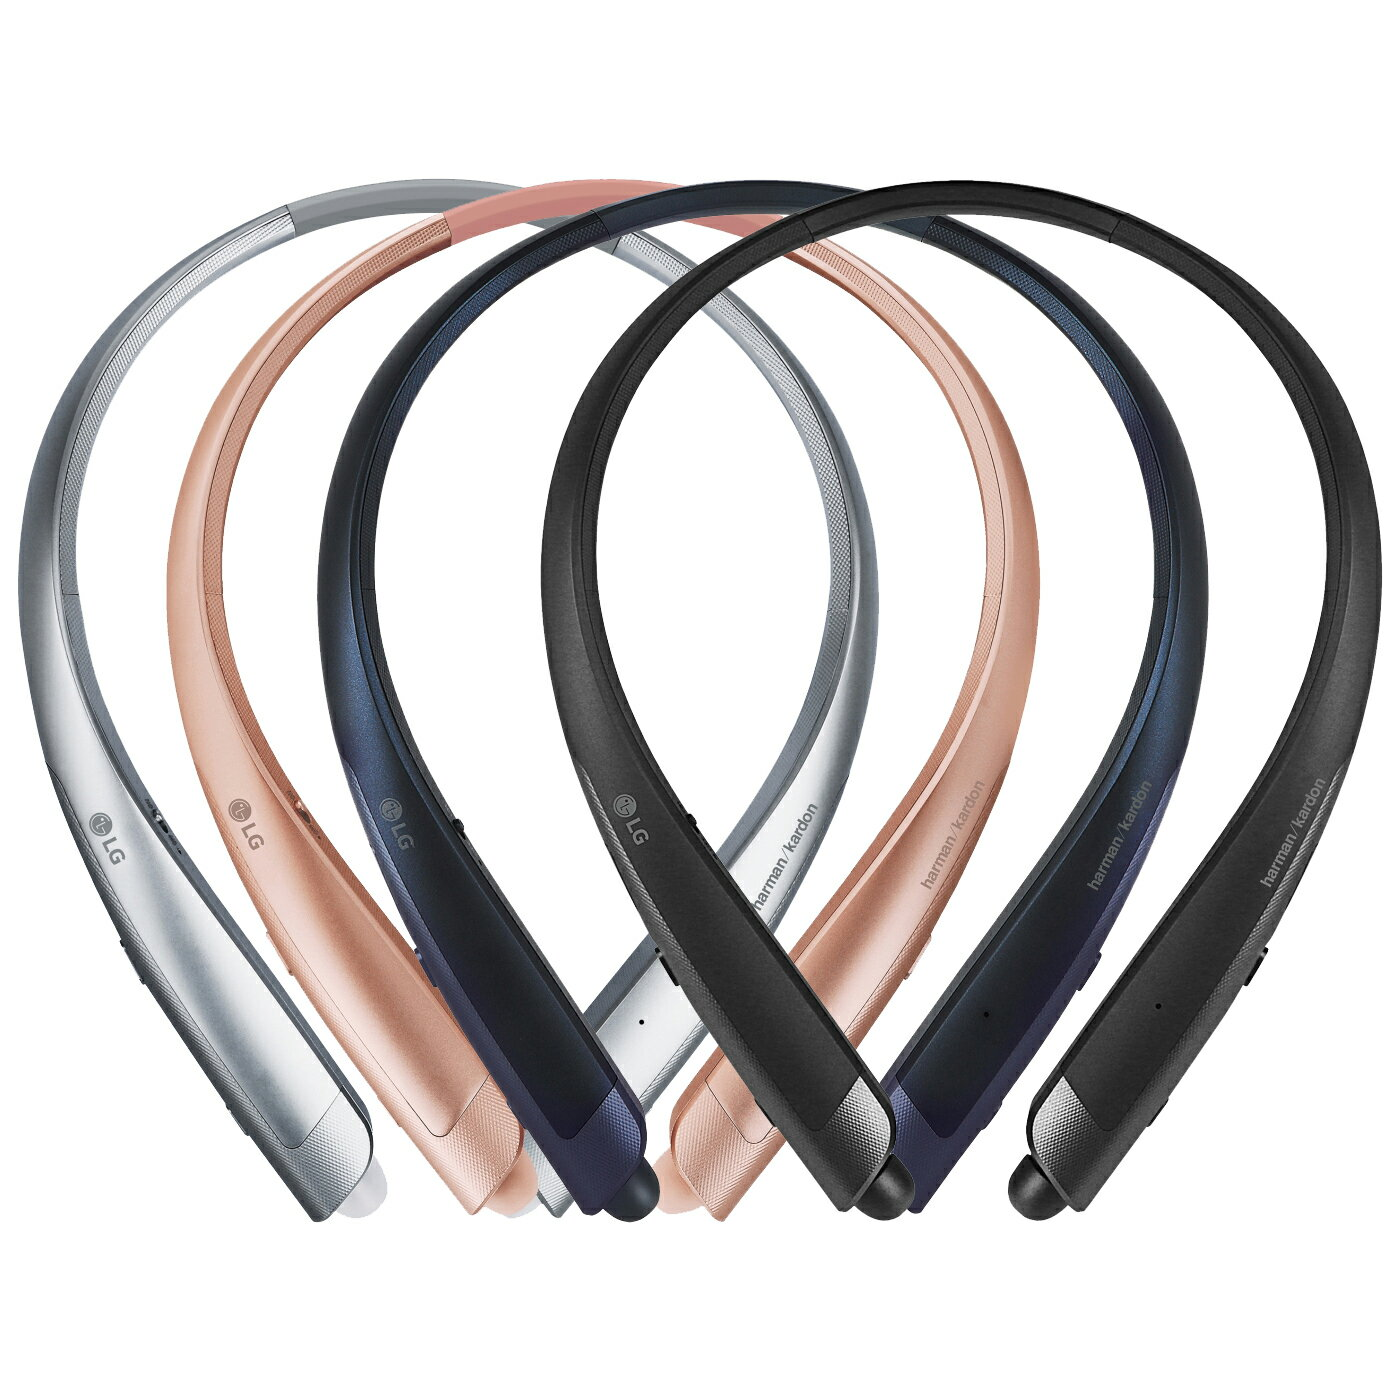 559be0bdce2 LG HBS-930 TONE Platinum α™ Sleek Stylish Bluetooth® Wireless Stereo Headset  *